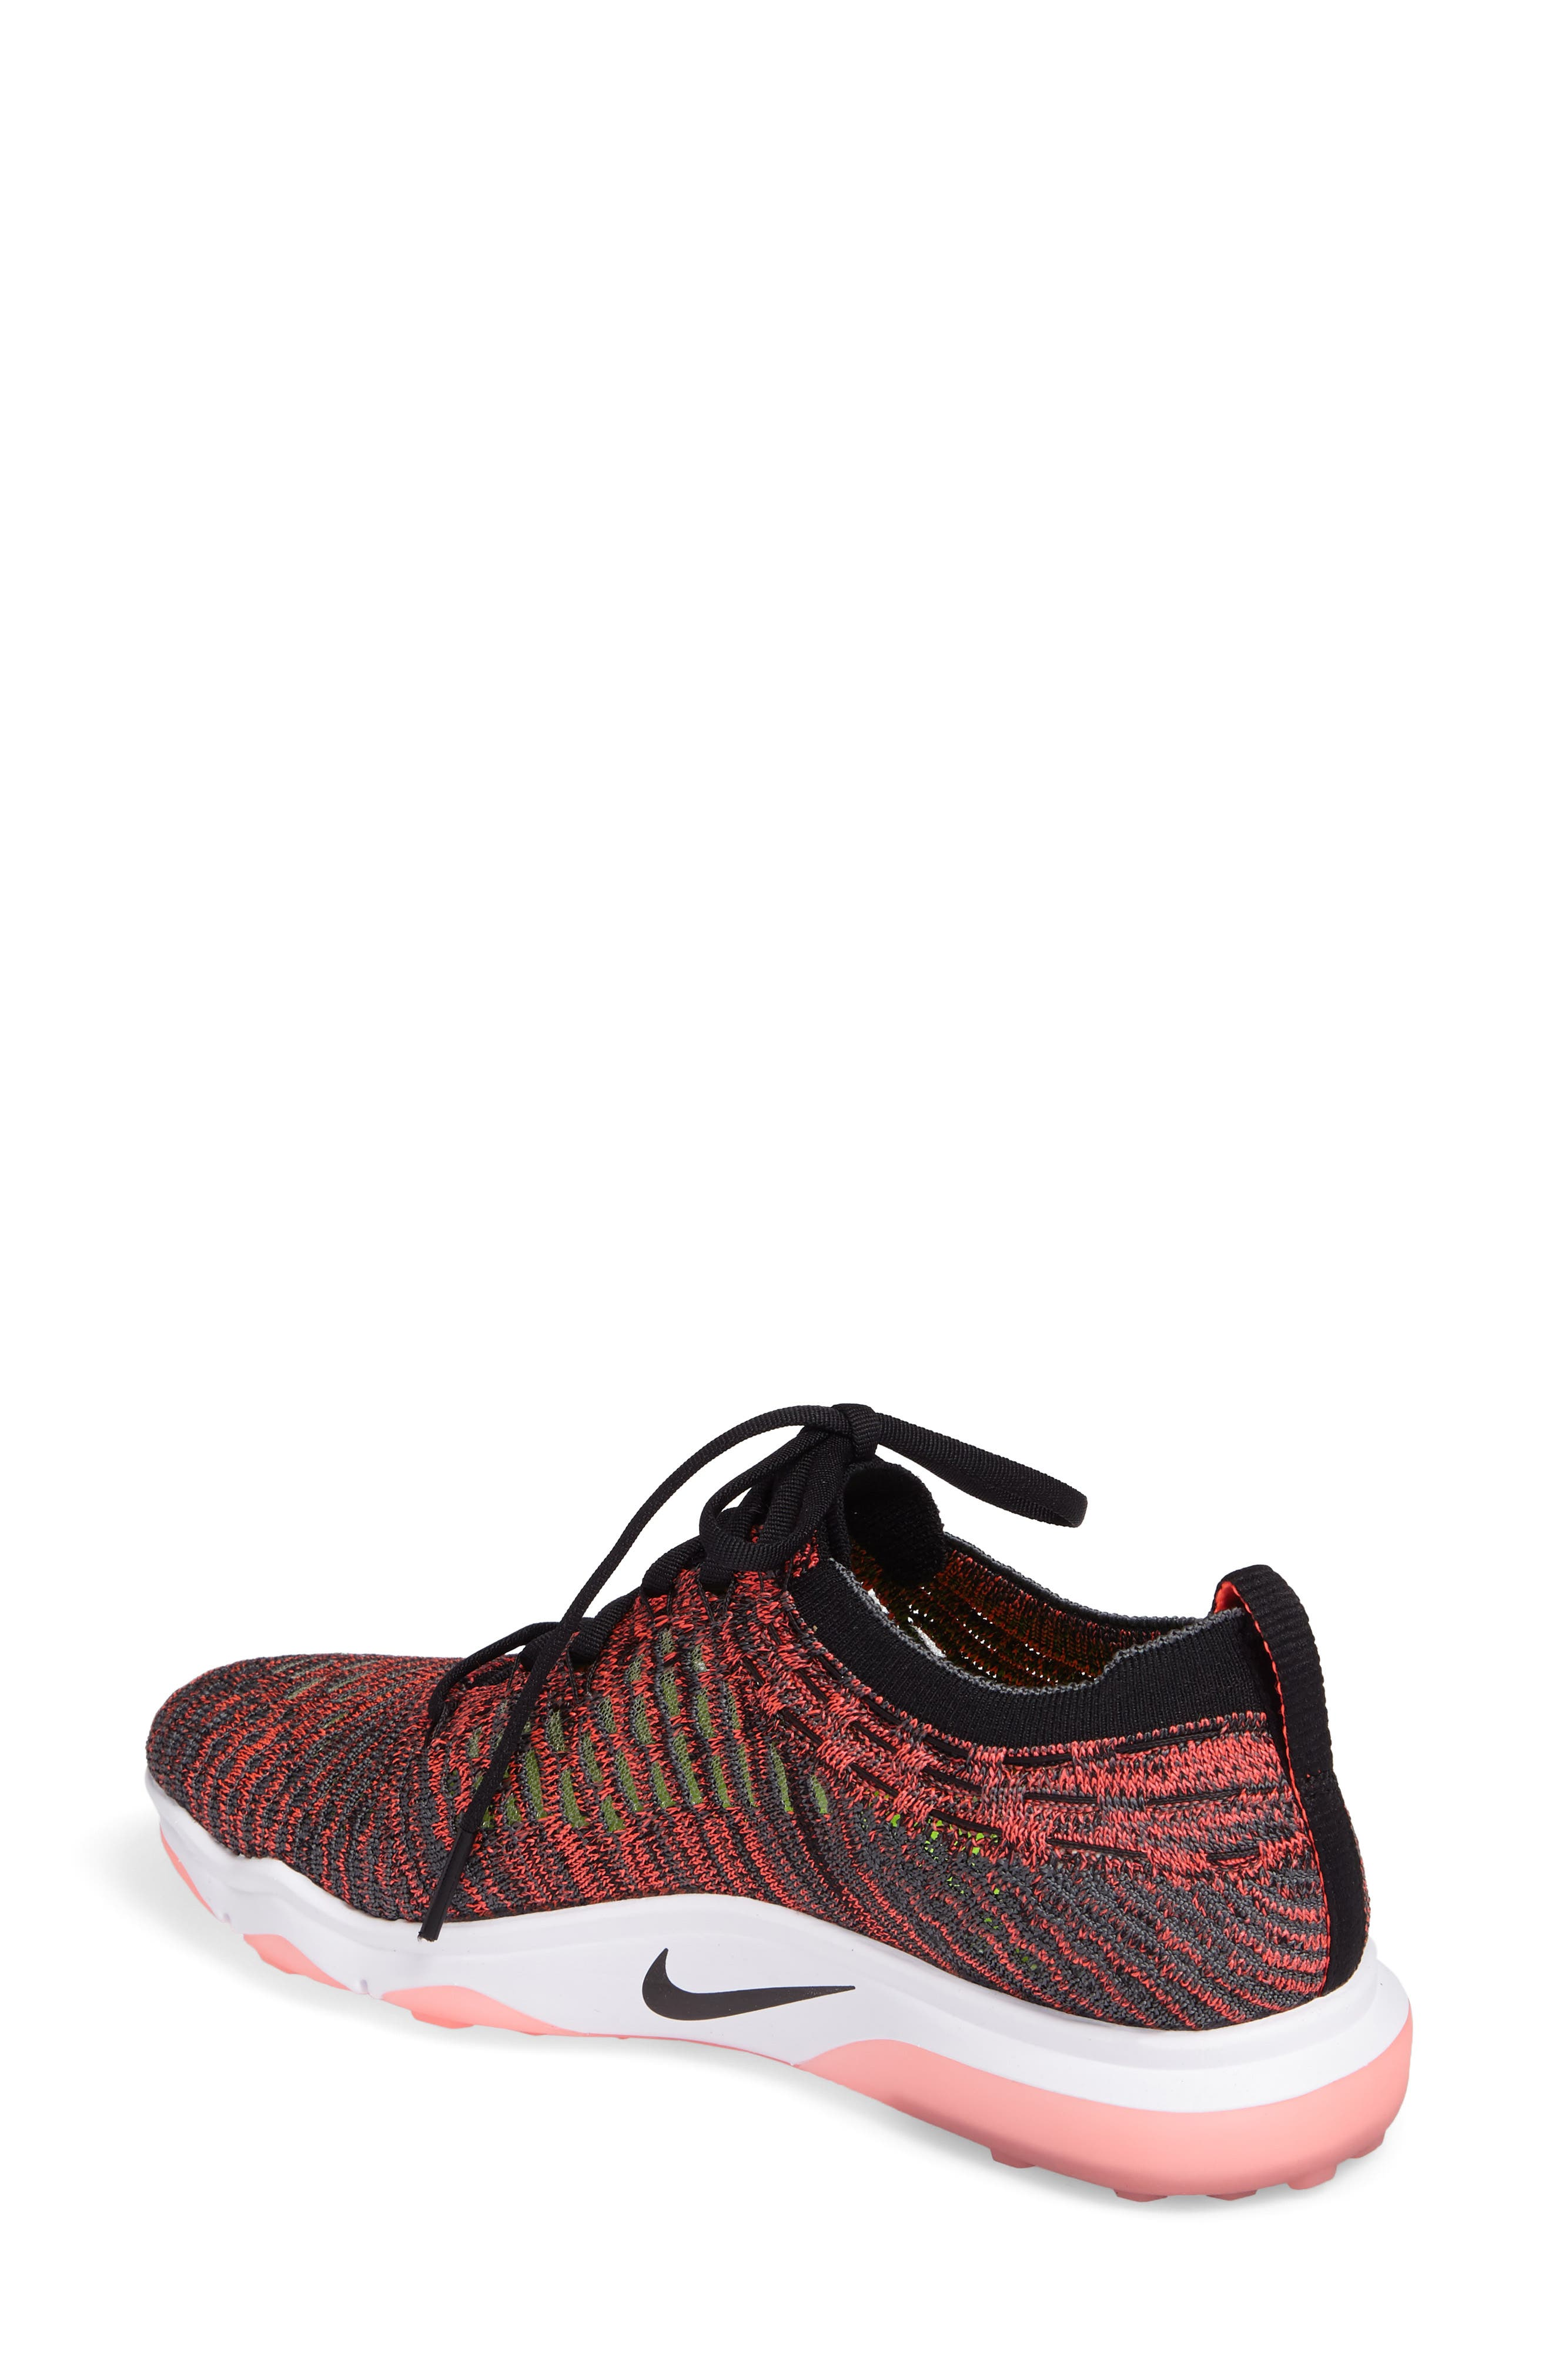 Air Zoom Fearless Flyknit Training Shoe,                             Alternate thumbnail 12, color,